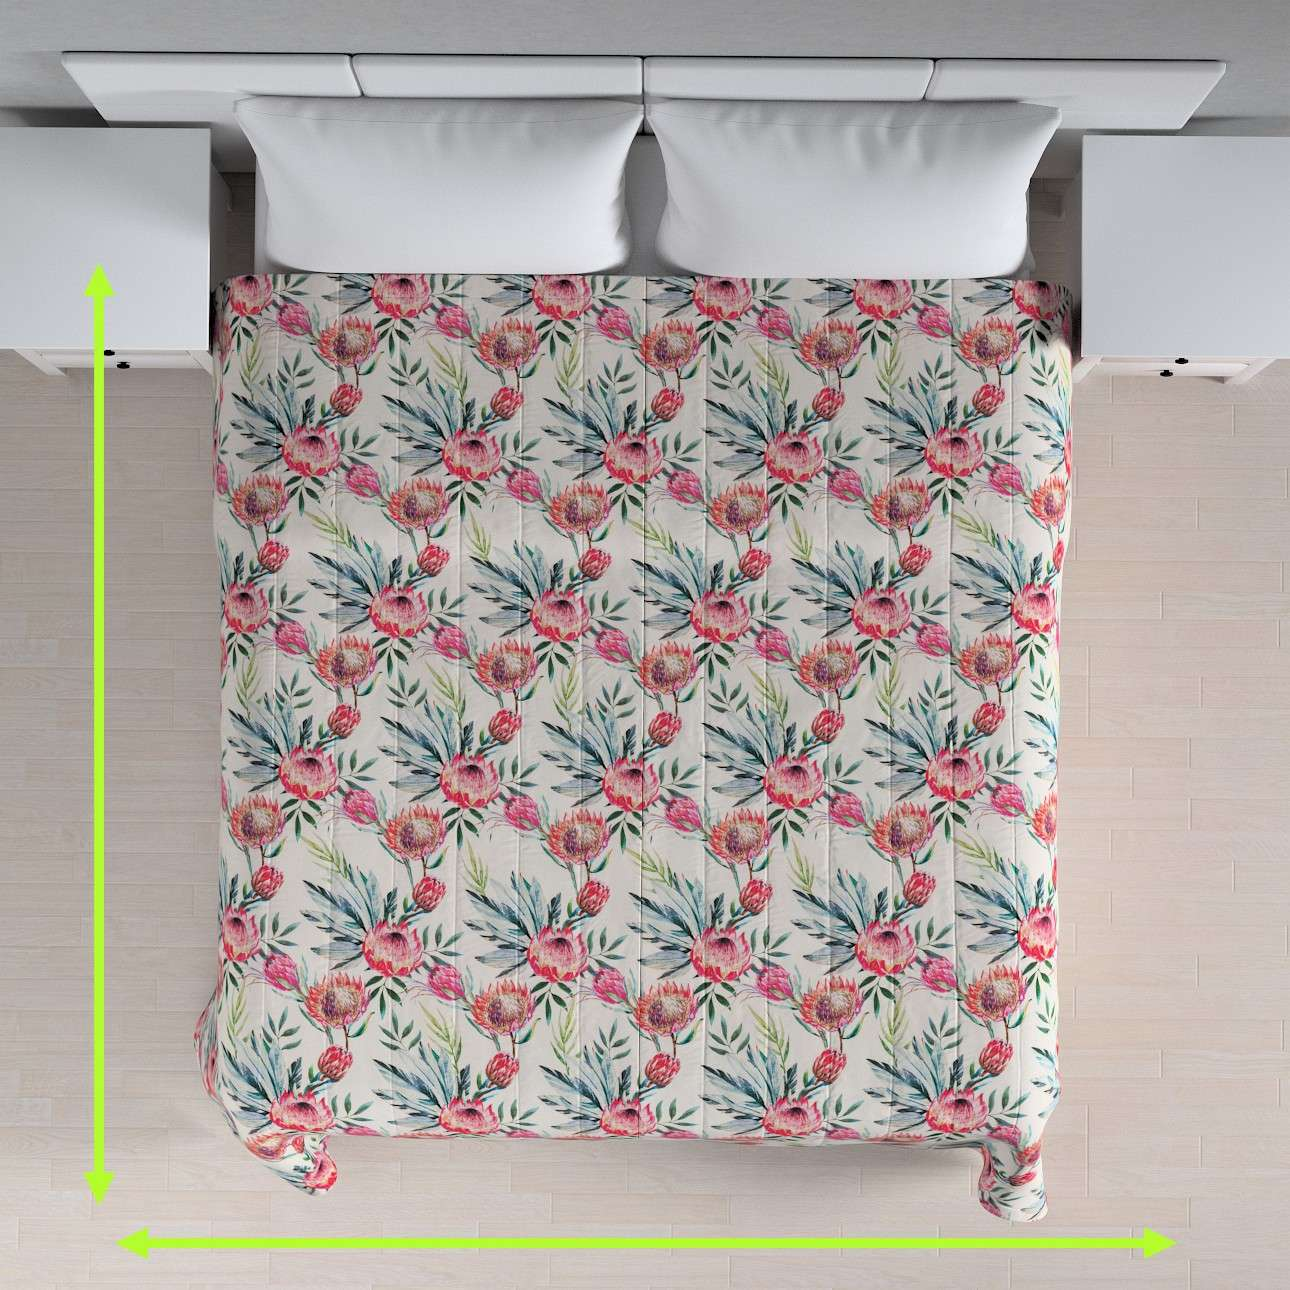 Quilted throw (vertical quilt pattern) in collection New Art, fabric: 141-59